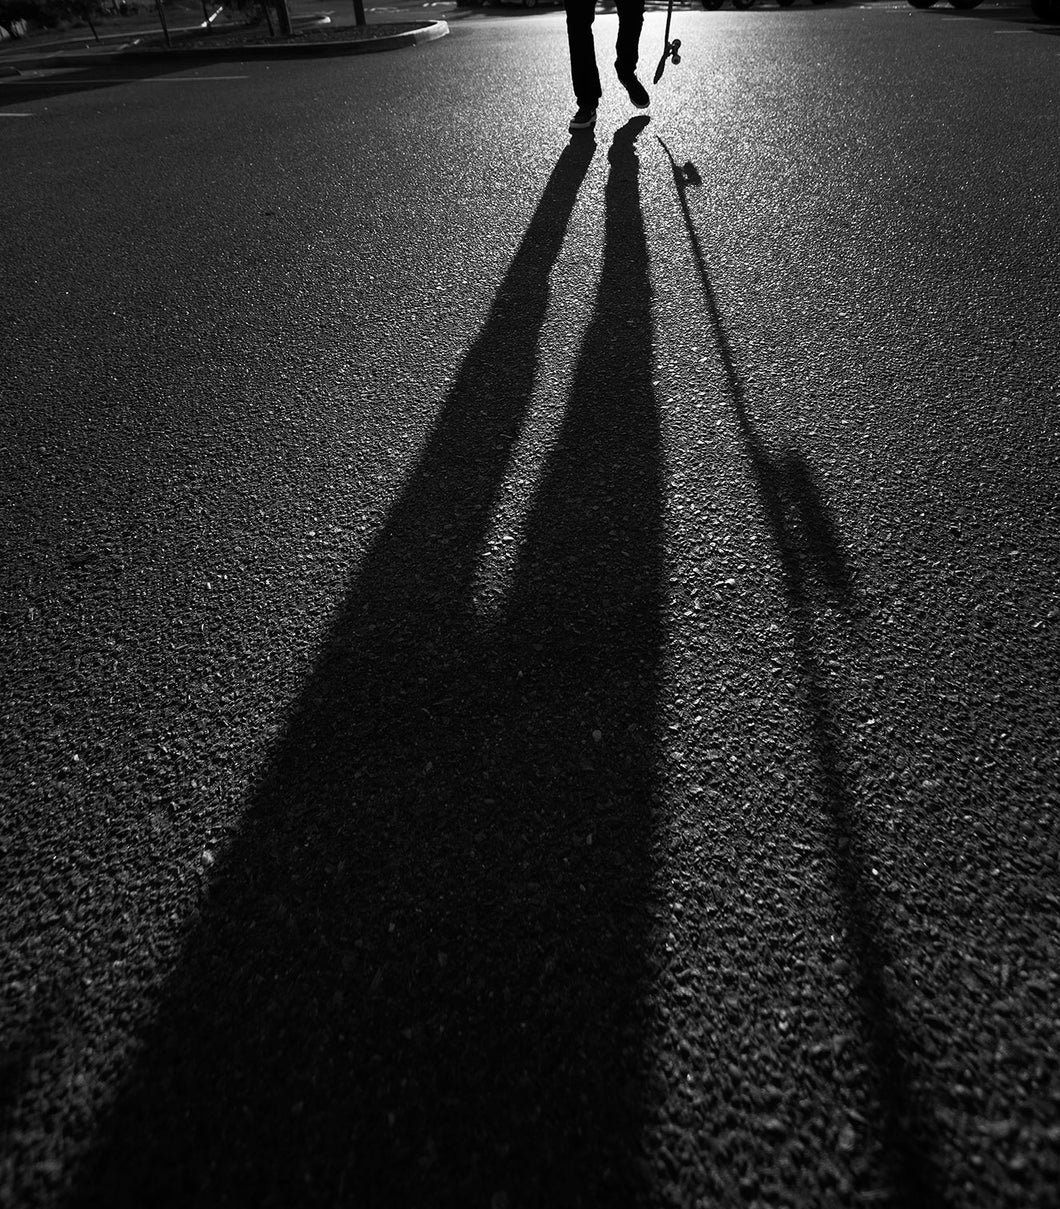 Skateboarder Shadow Photograph 18X24